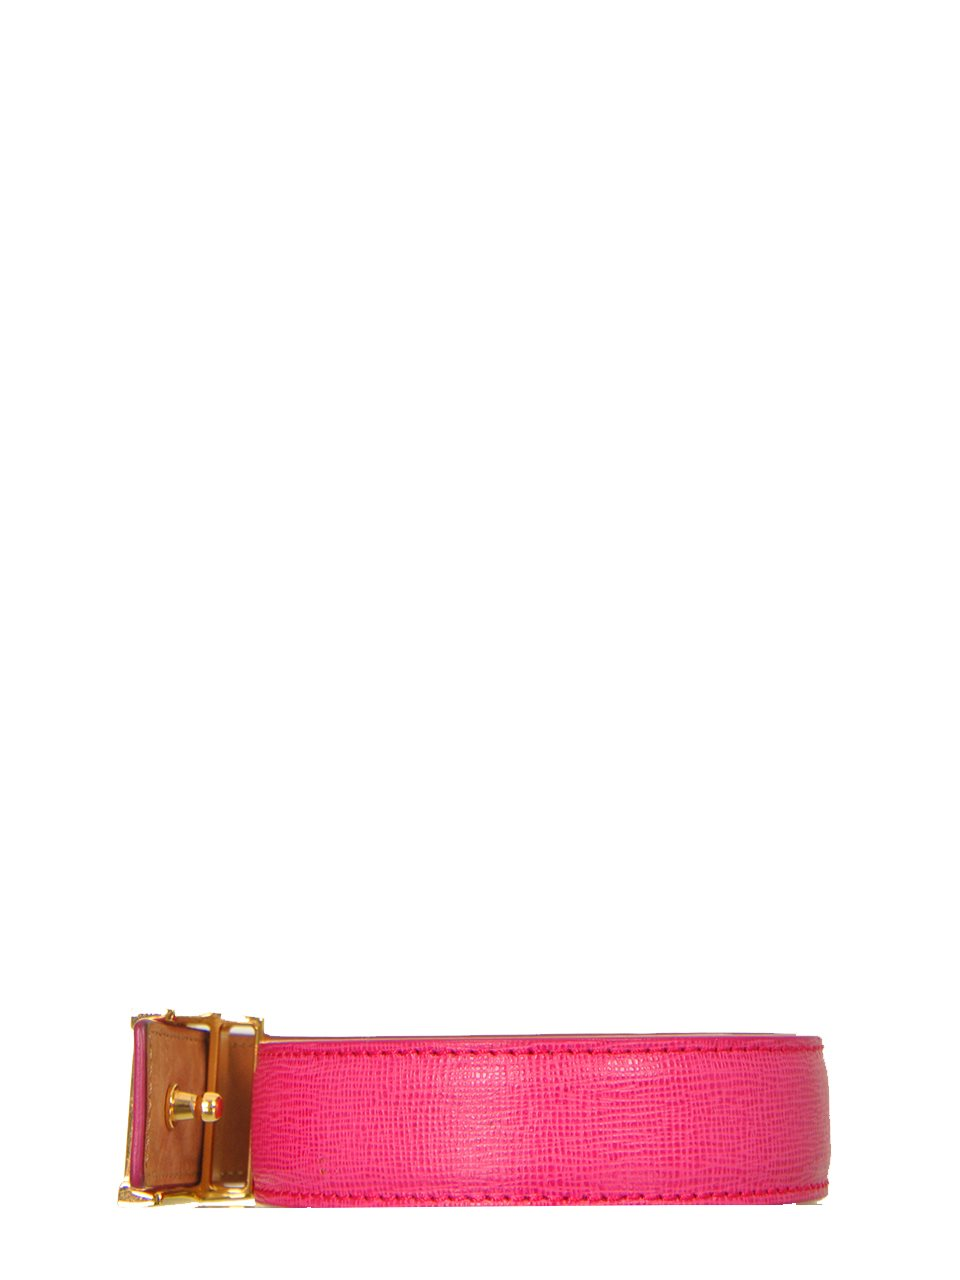 Fendi - Leather Belt - Image 4 of 5